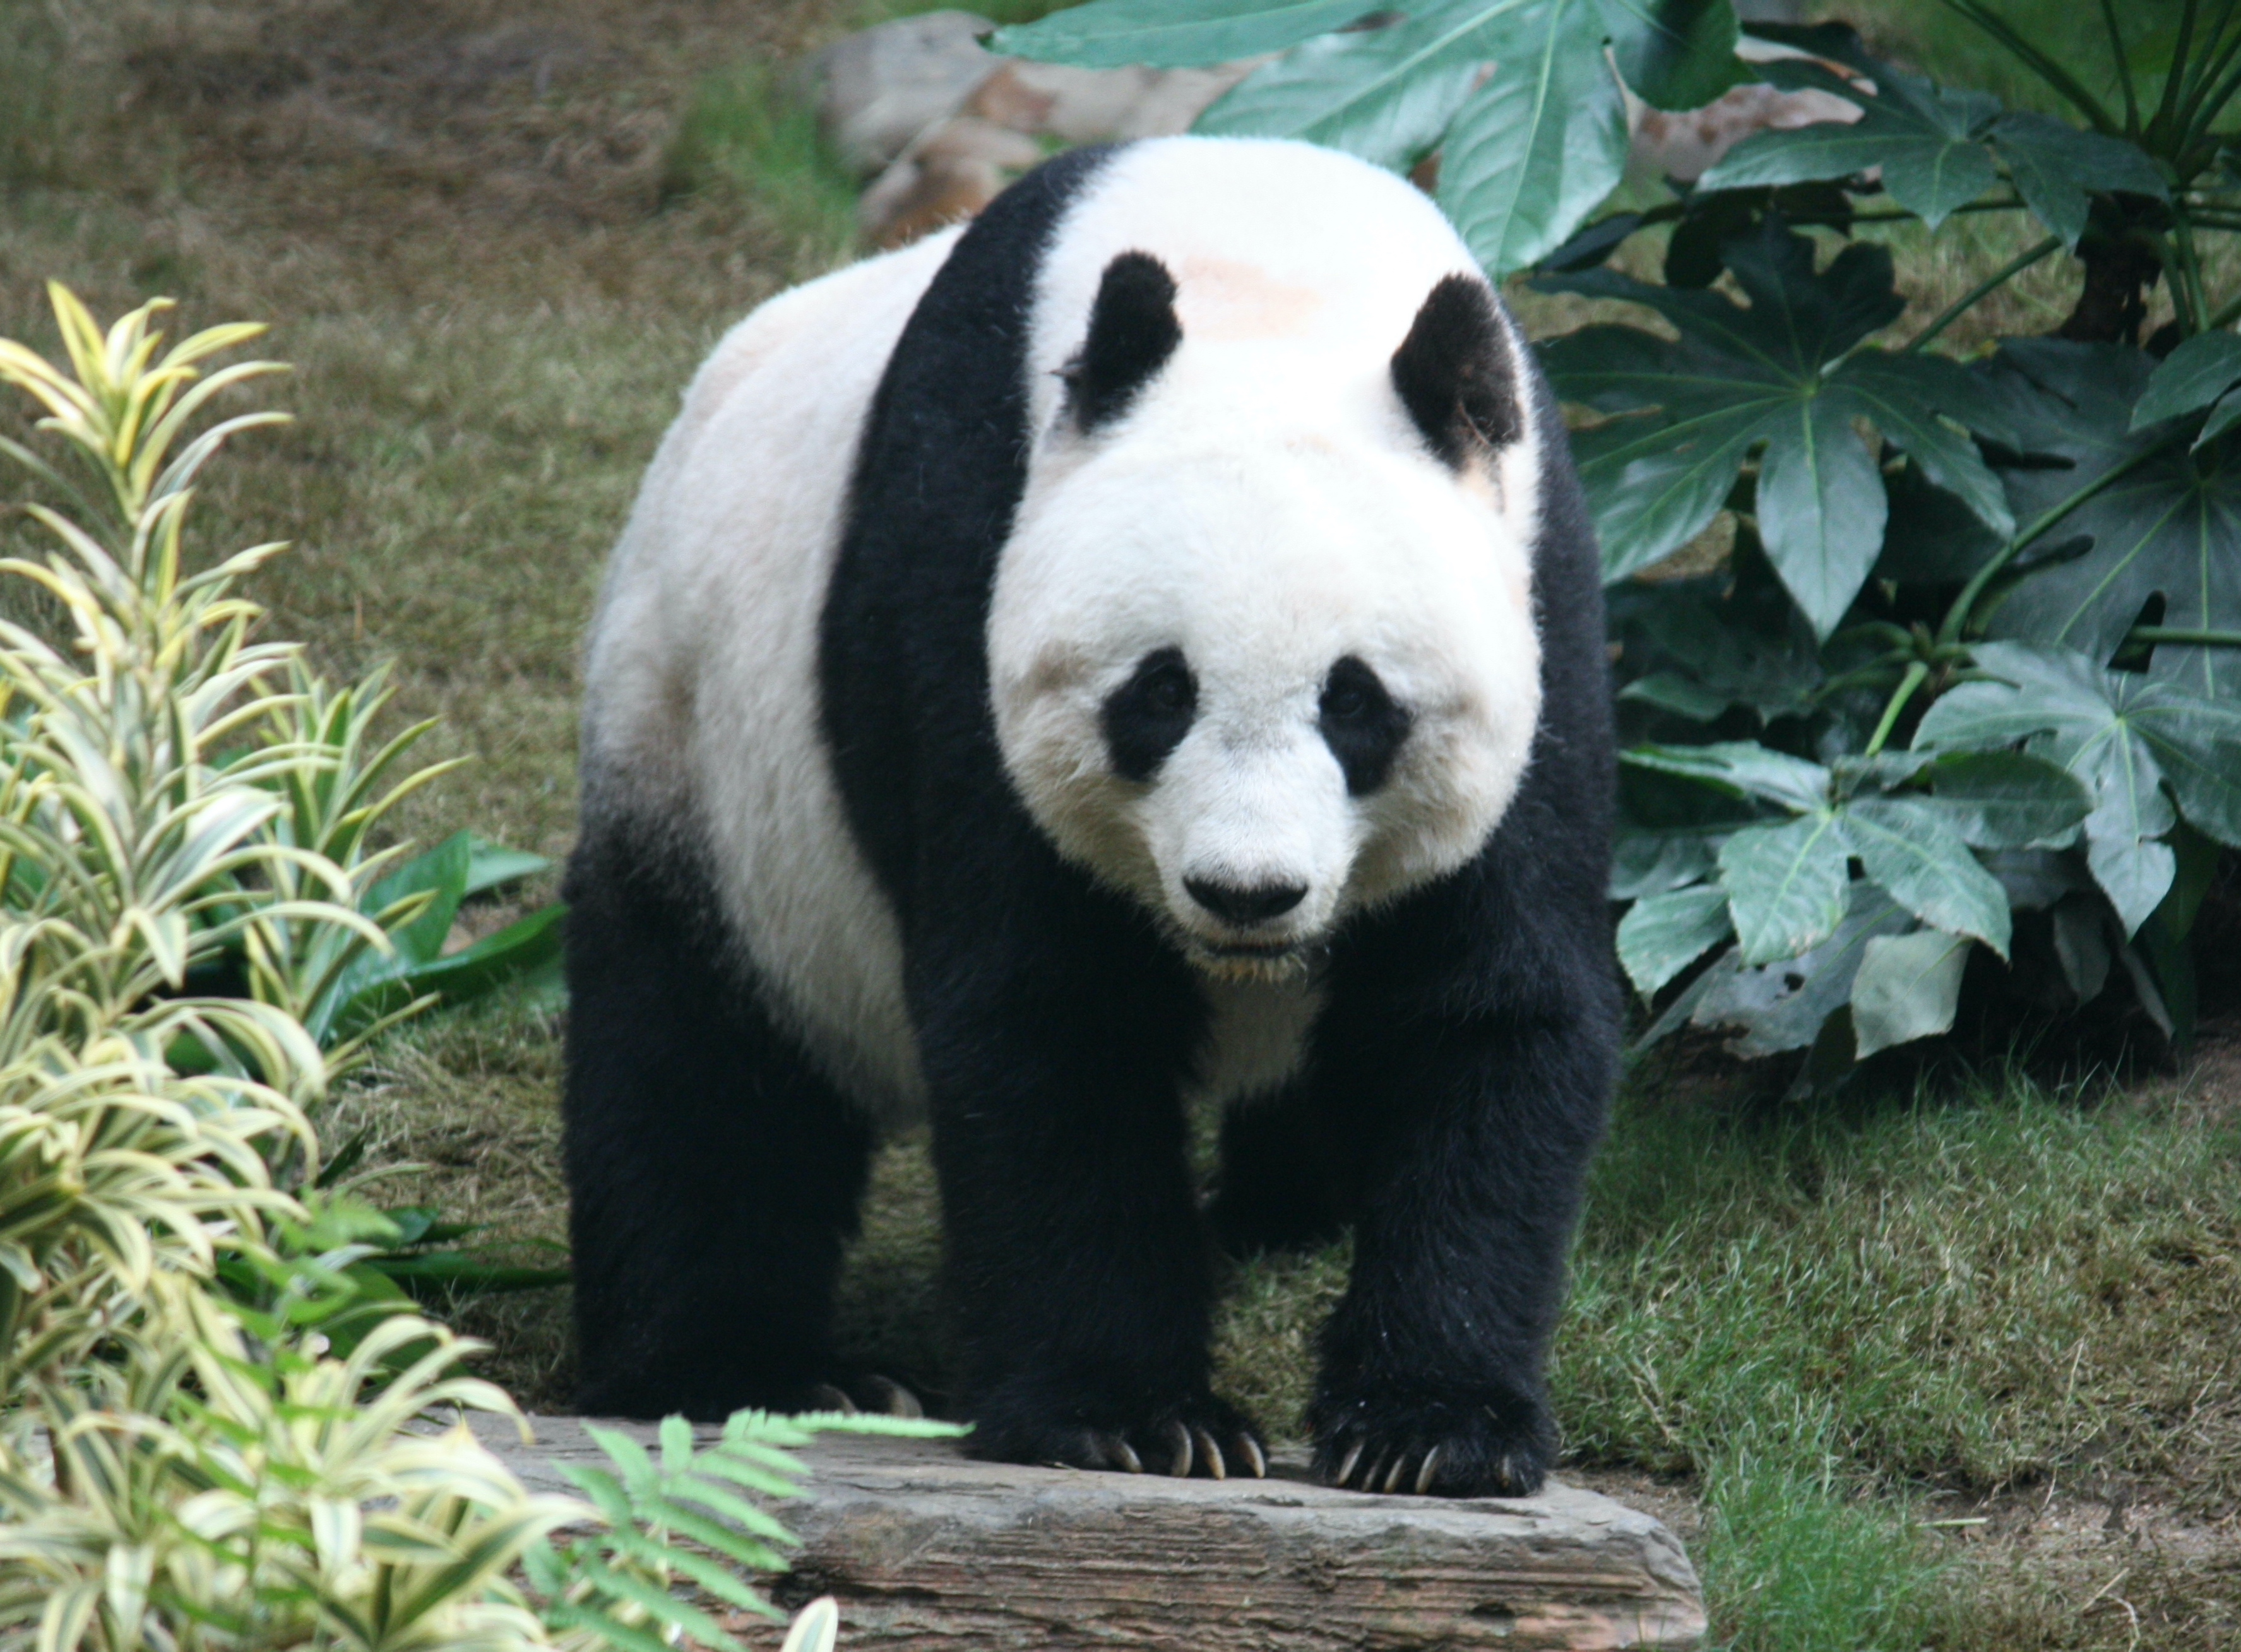 upload.wikimedia.org_wikipedia_commons_0_0f_grosser_panda.jpg